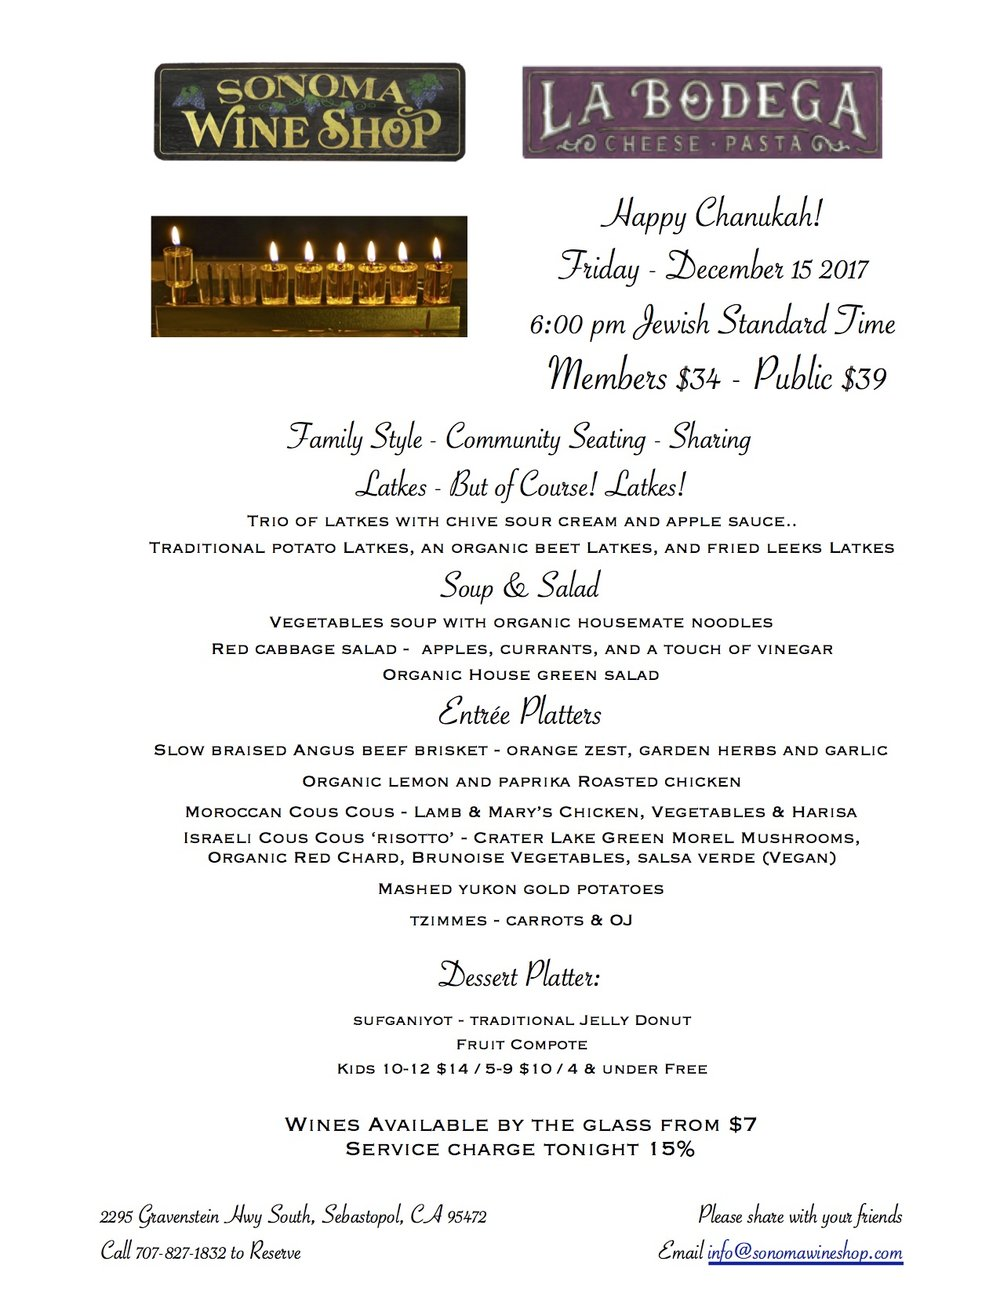 chanukah menu dec 15 2017.jpg